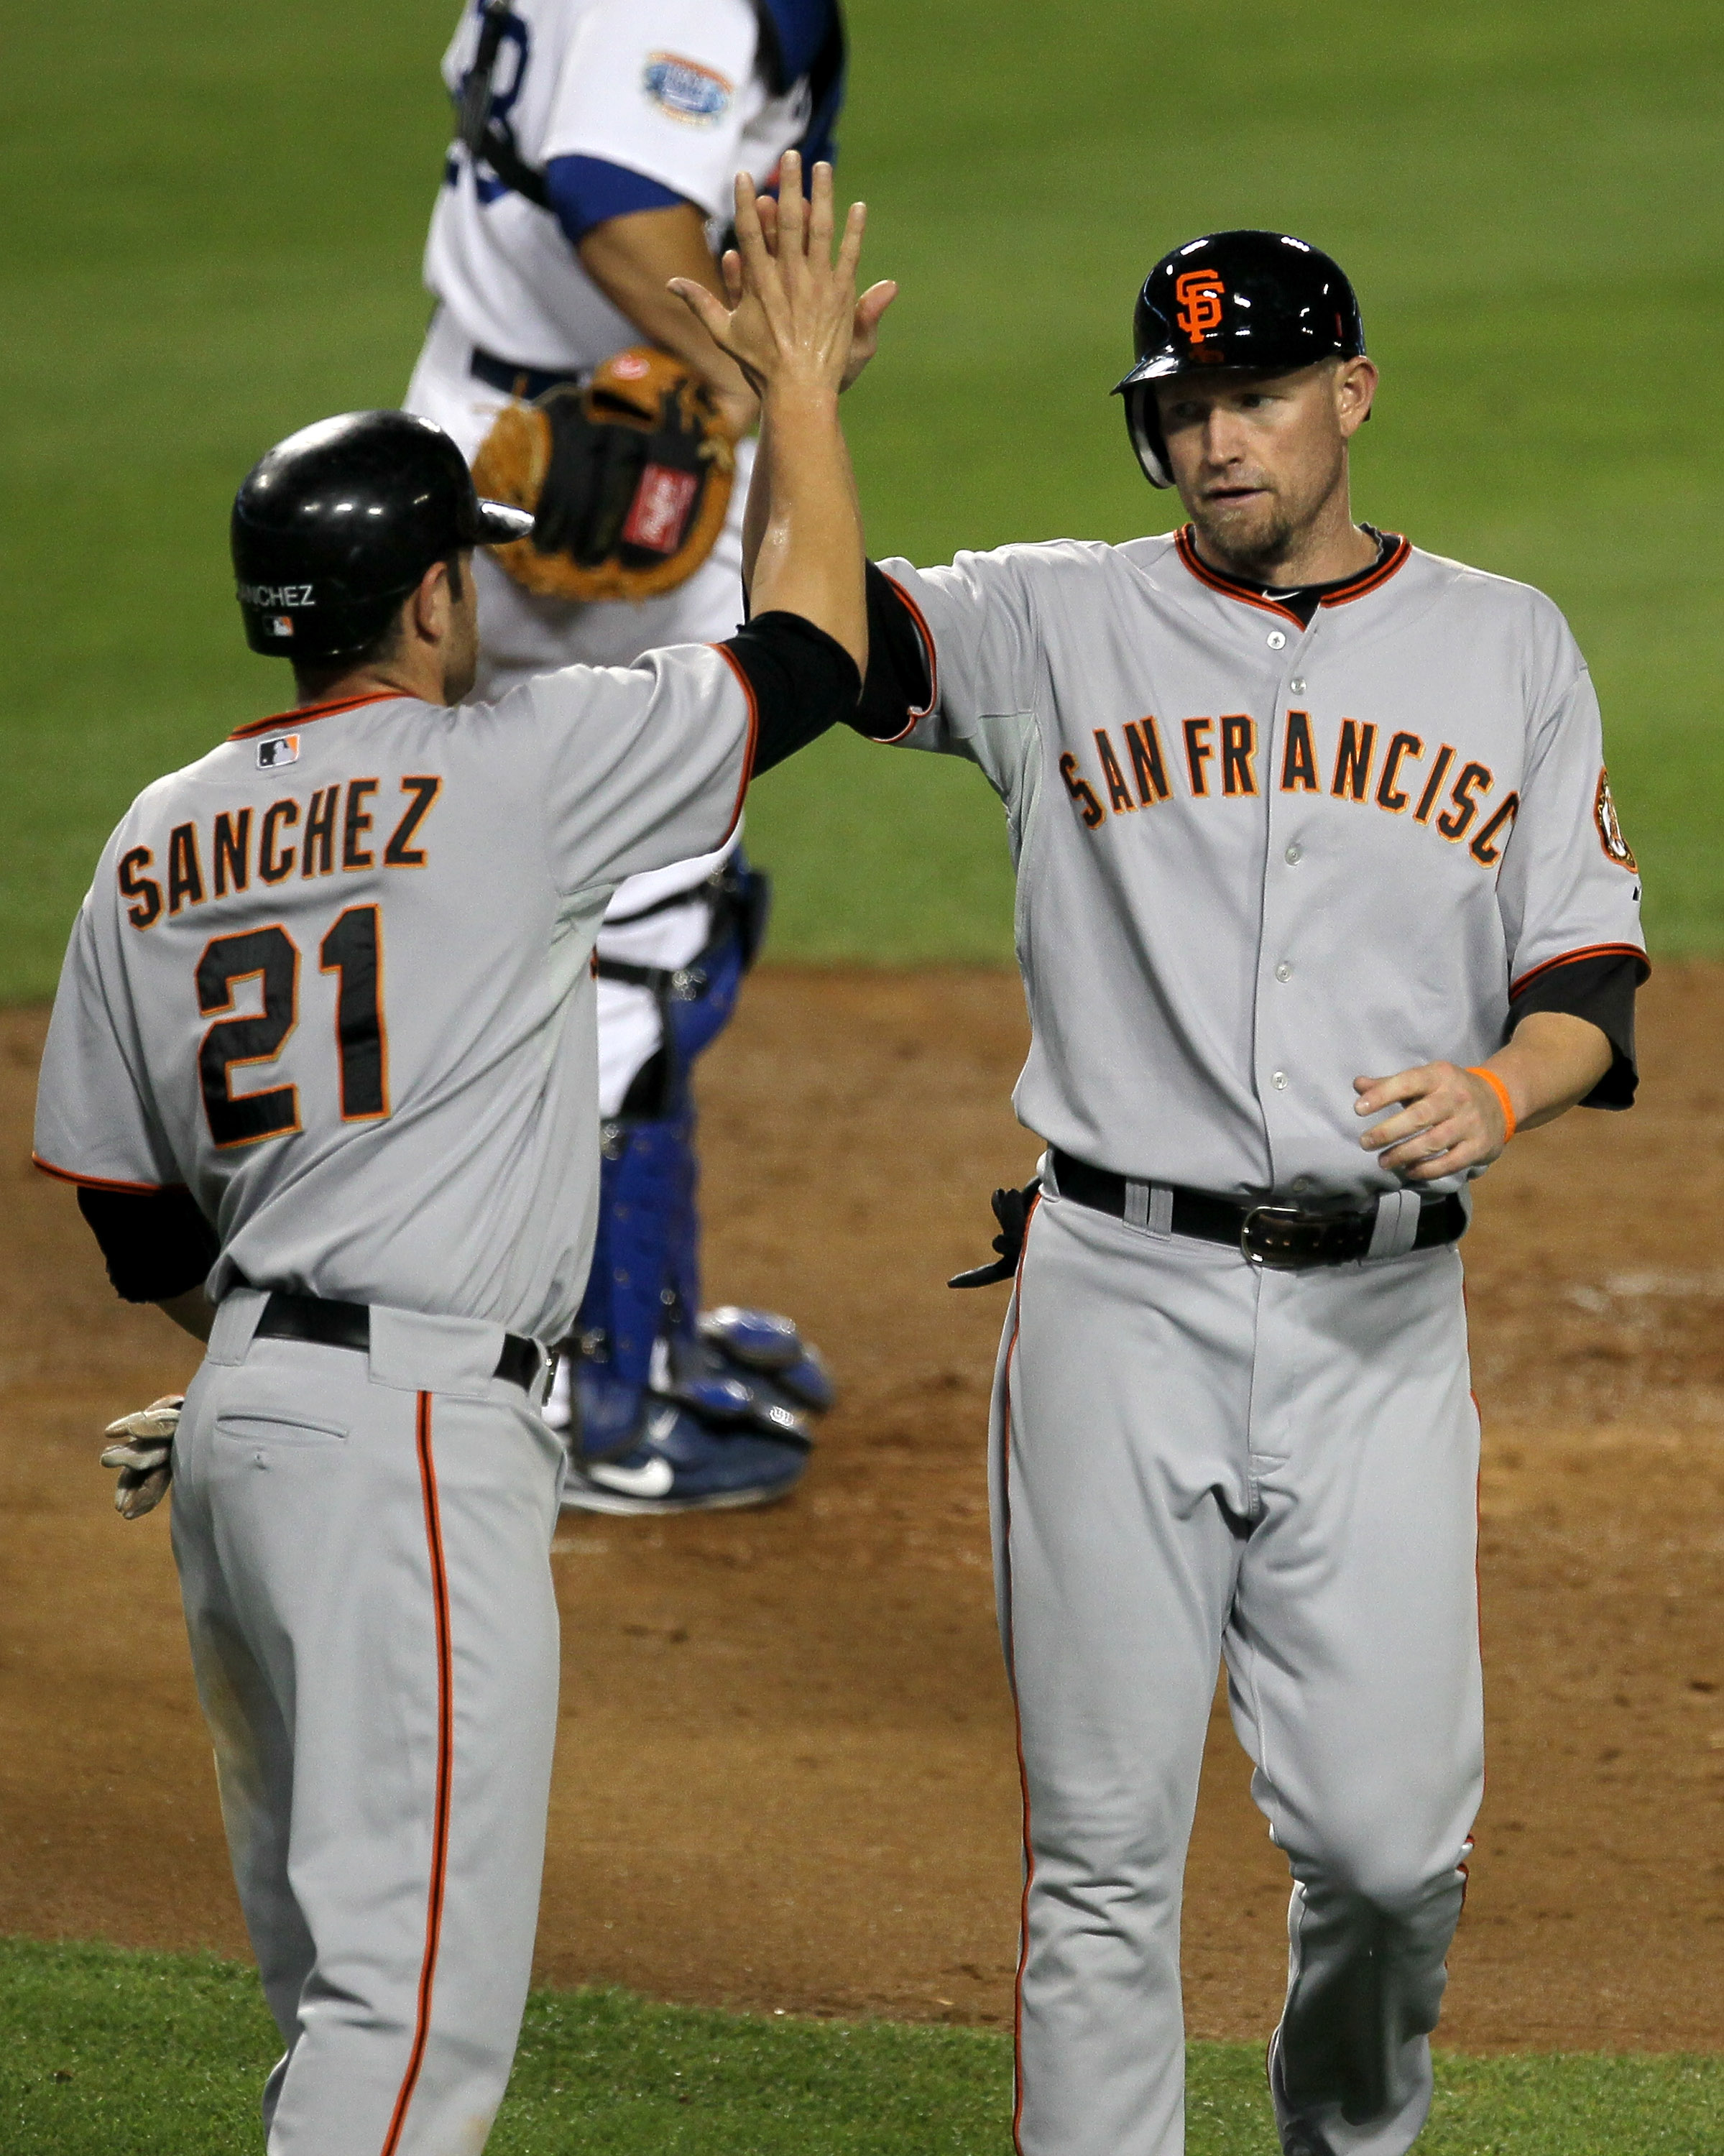 LOS ANGELES - SEPTEMBER 3:  Aubrey Huff #17 and Freddy Sanchez #21 of the San Francisco Giants celebrate after they score on Buster Posey's fourth inning single against the Los Angeles Dodgers on September 3, 2010 at Dodger Stadium in Los Angeles, Califor